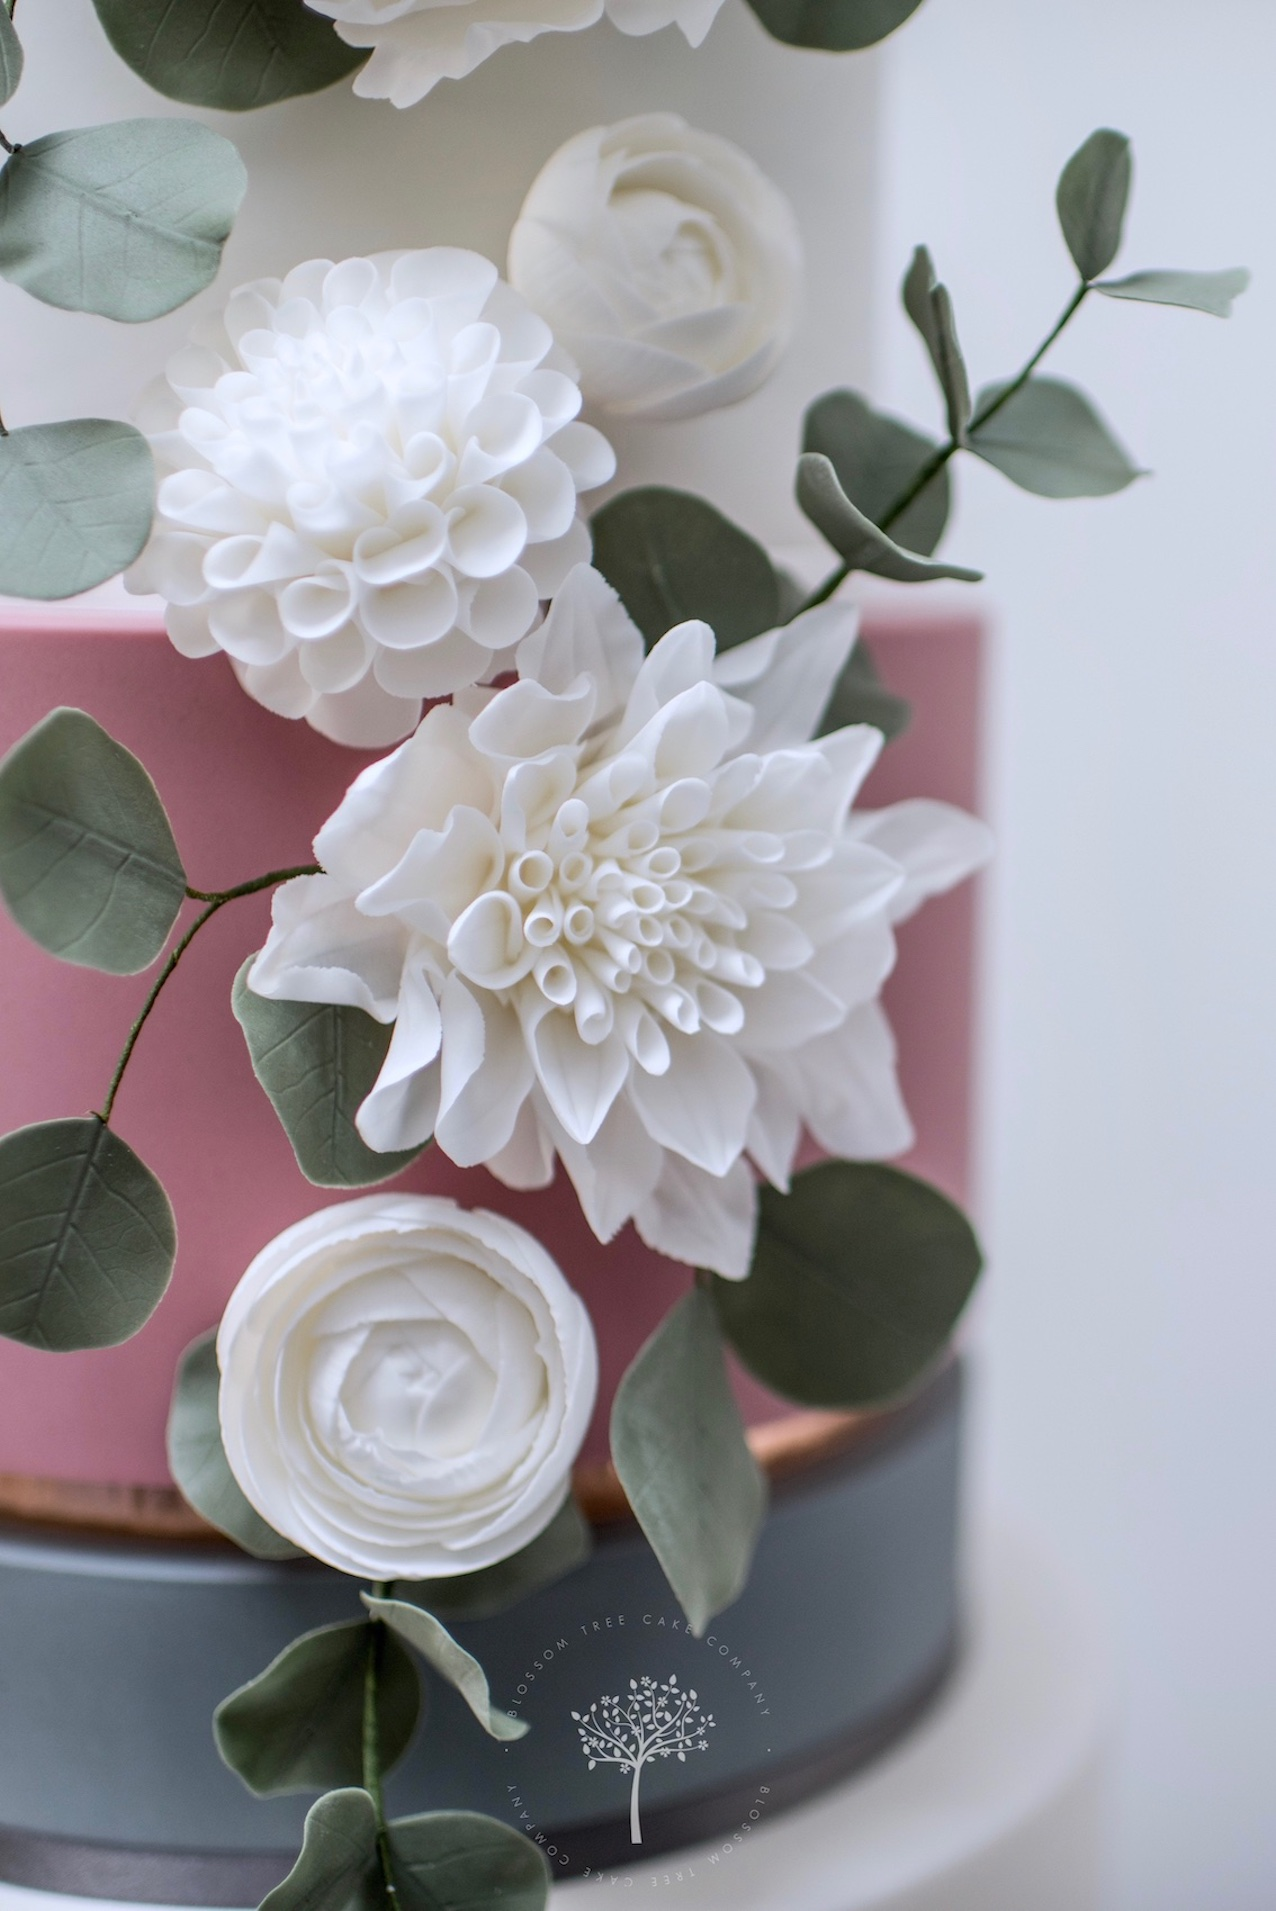 Marble & White Dahlias wedding cake by Blossom Tree Cake Company Harrogate North Yorkshire - sugar flowers.jpg